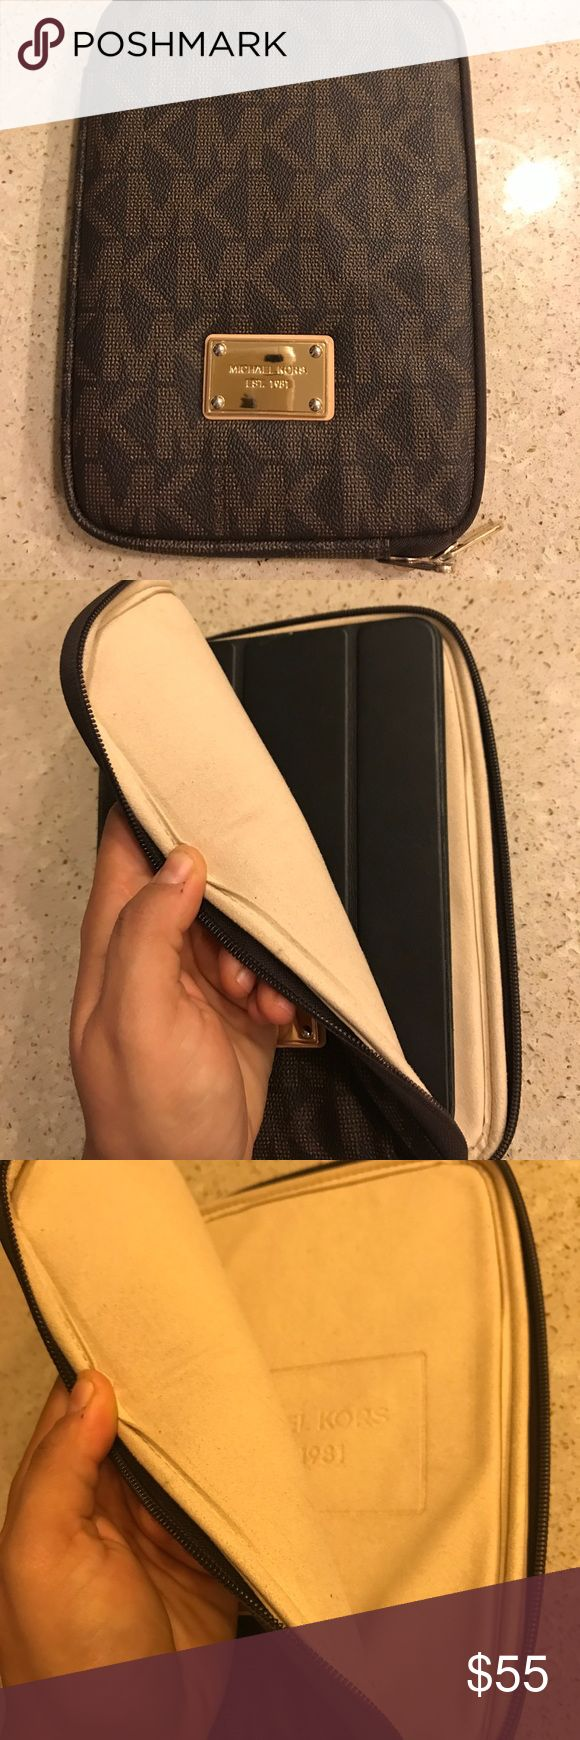 Michael Kors IPad mini sleeve Perfect condition! Brown with gold hardware. A few small scratches on the Michael Kors badge on the front. Inside is perfectly clean! Fits an iPad mini 1st generation Michael Kors Accessories Tablet Cases